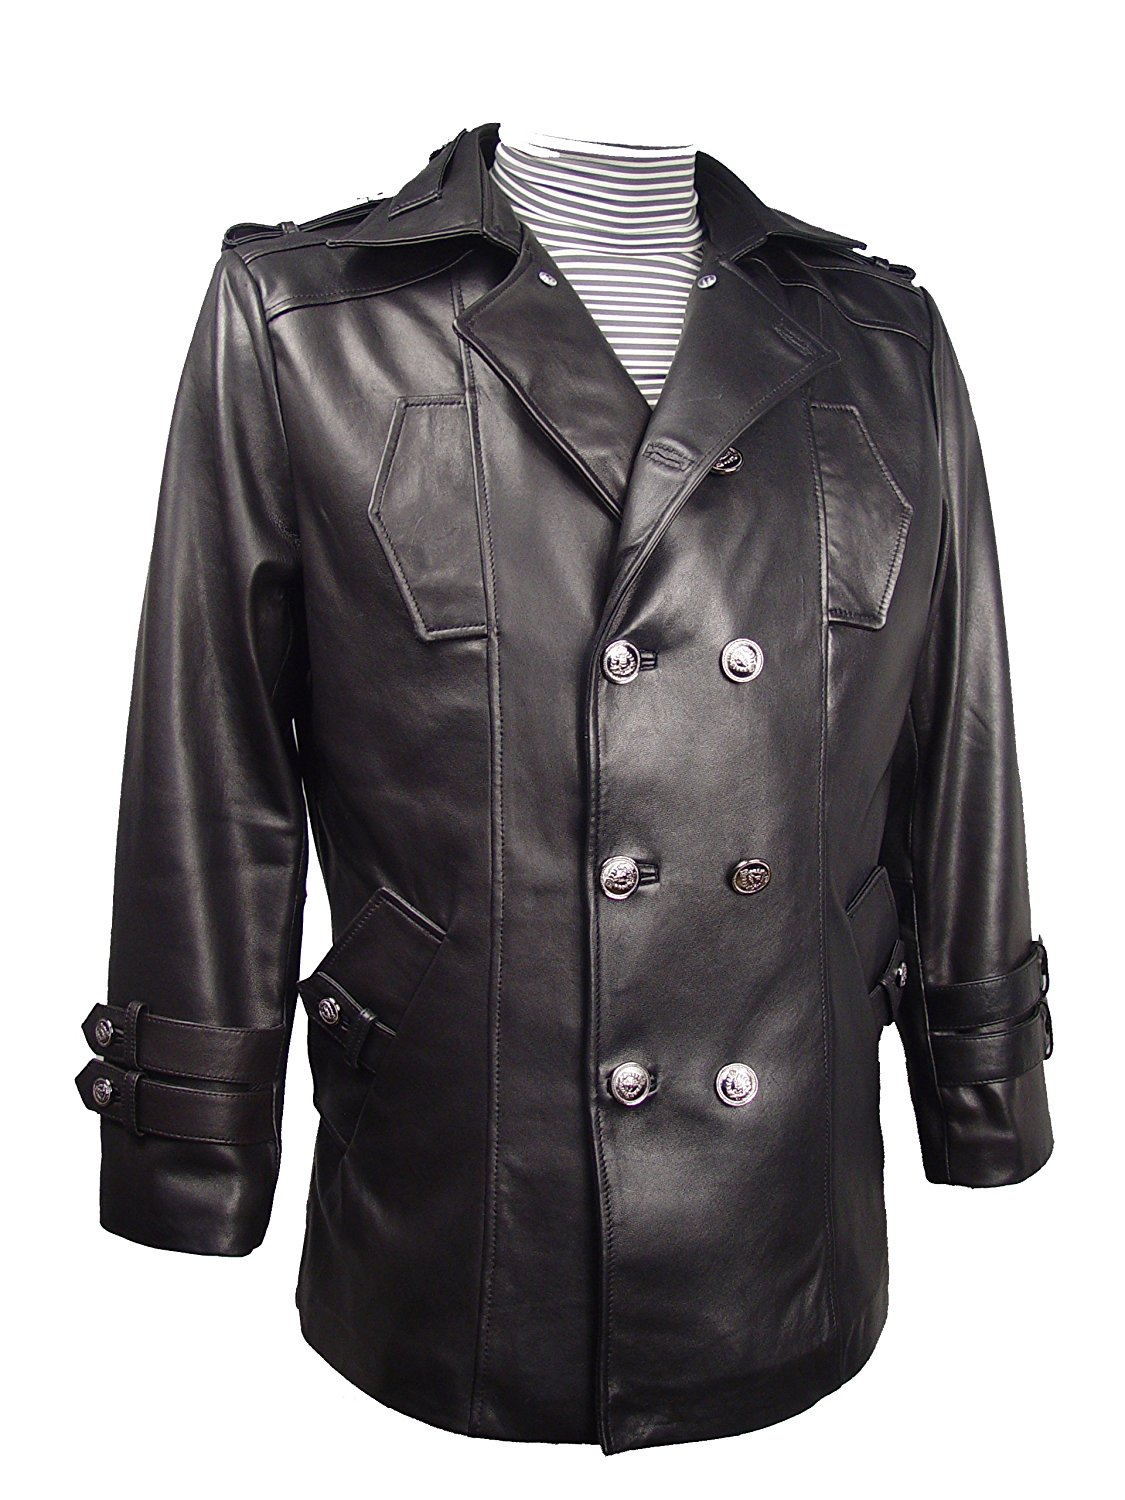 2d457c4047aebe Get Quotations · Nettailor Tall Big Man 1040 BIG TALL Size 4 Season Leather  Jacket Zip Out